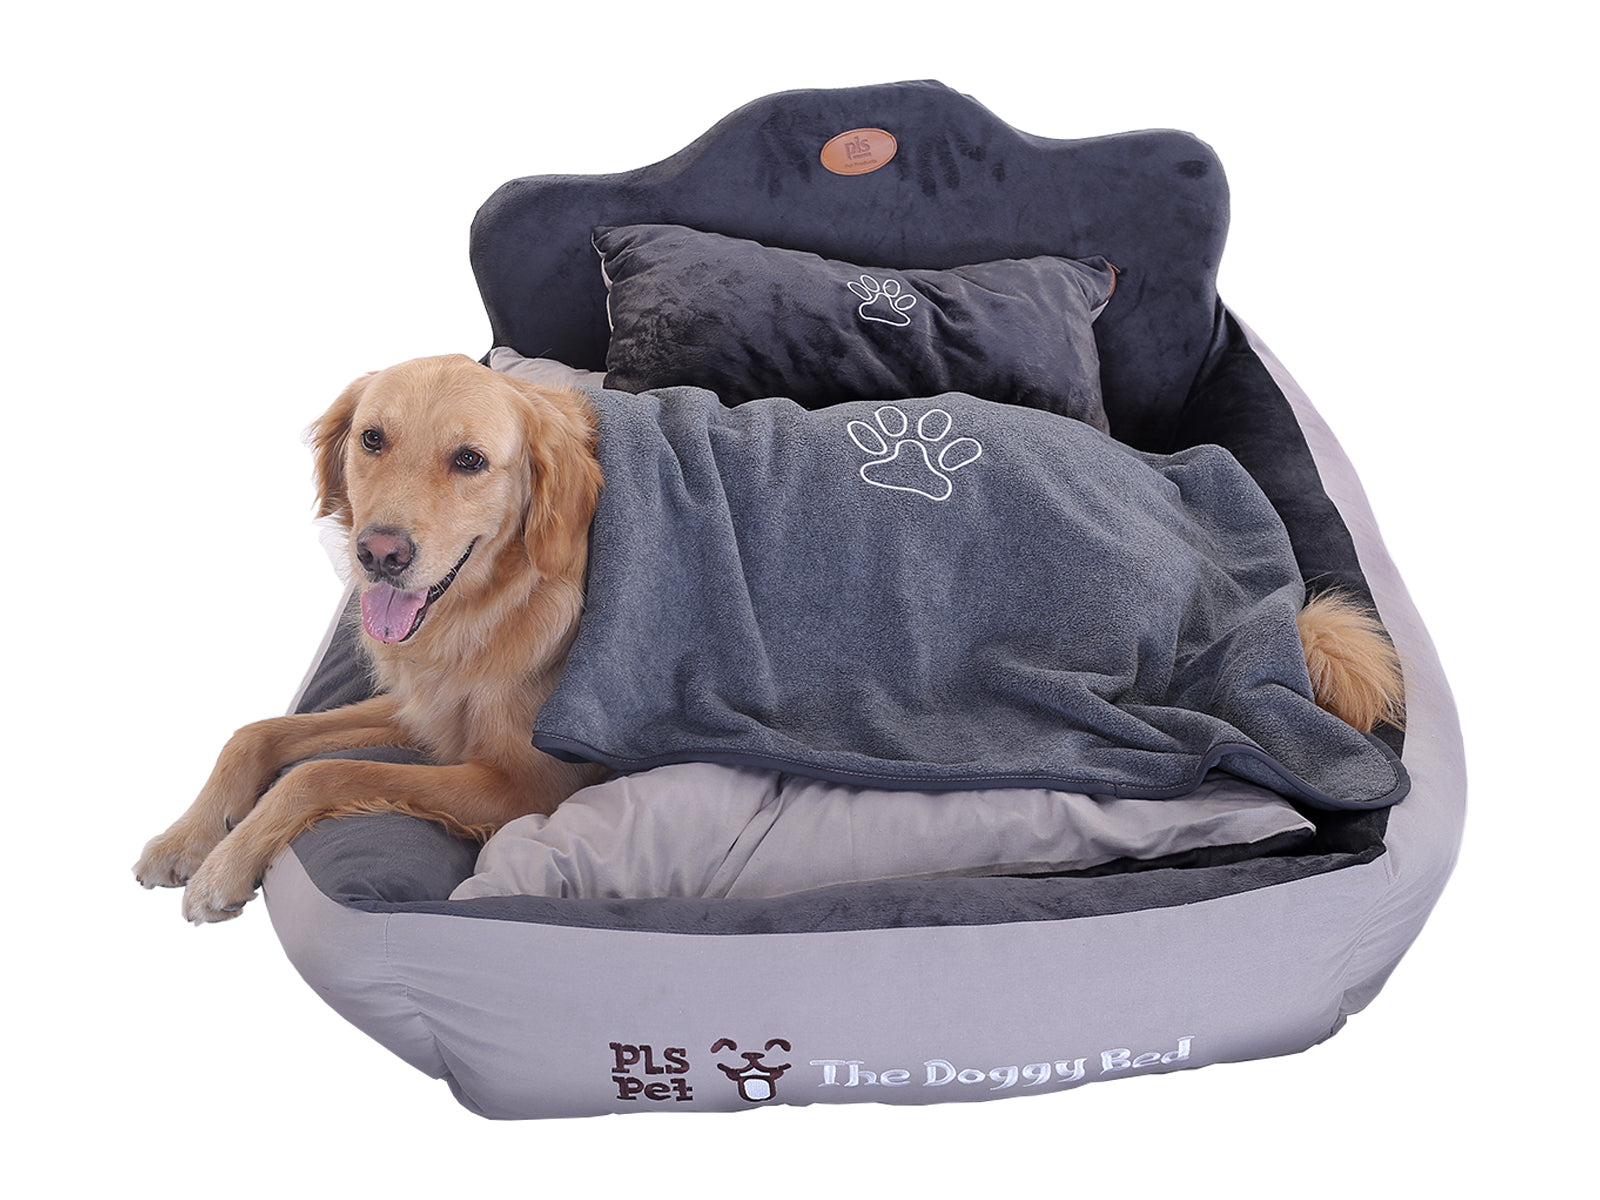 Marvelous The Doggy Bed With Free Blanket Birdsong Dog Beds Theyellowbook Wood Chair Design Ideas Theyellowbookinfo